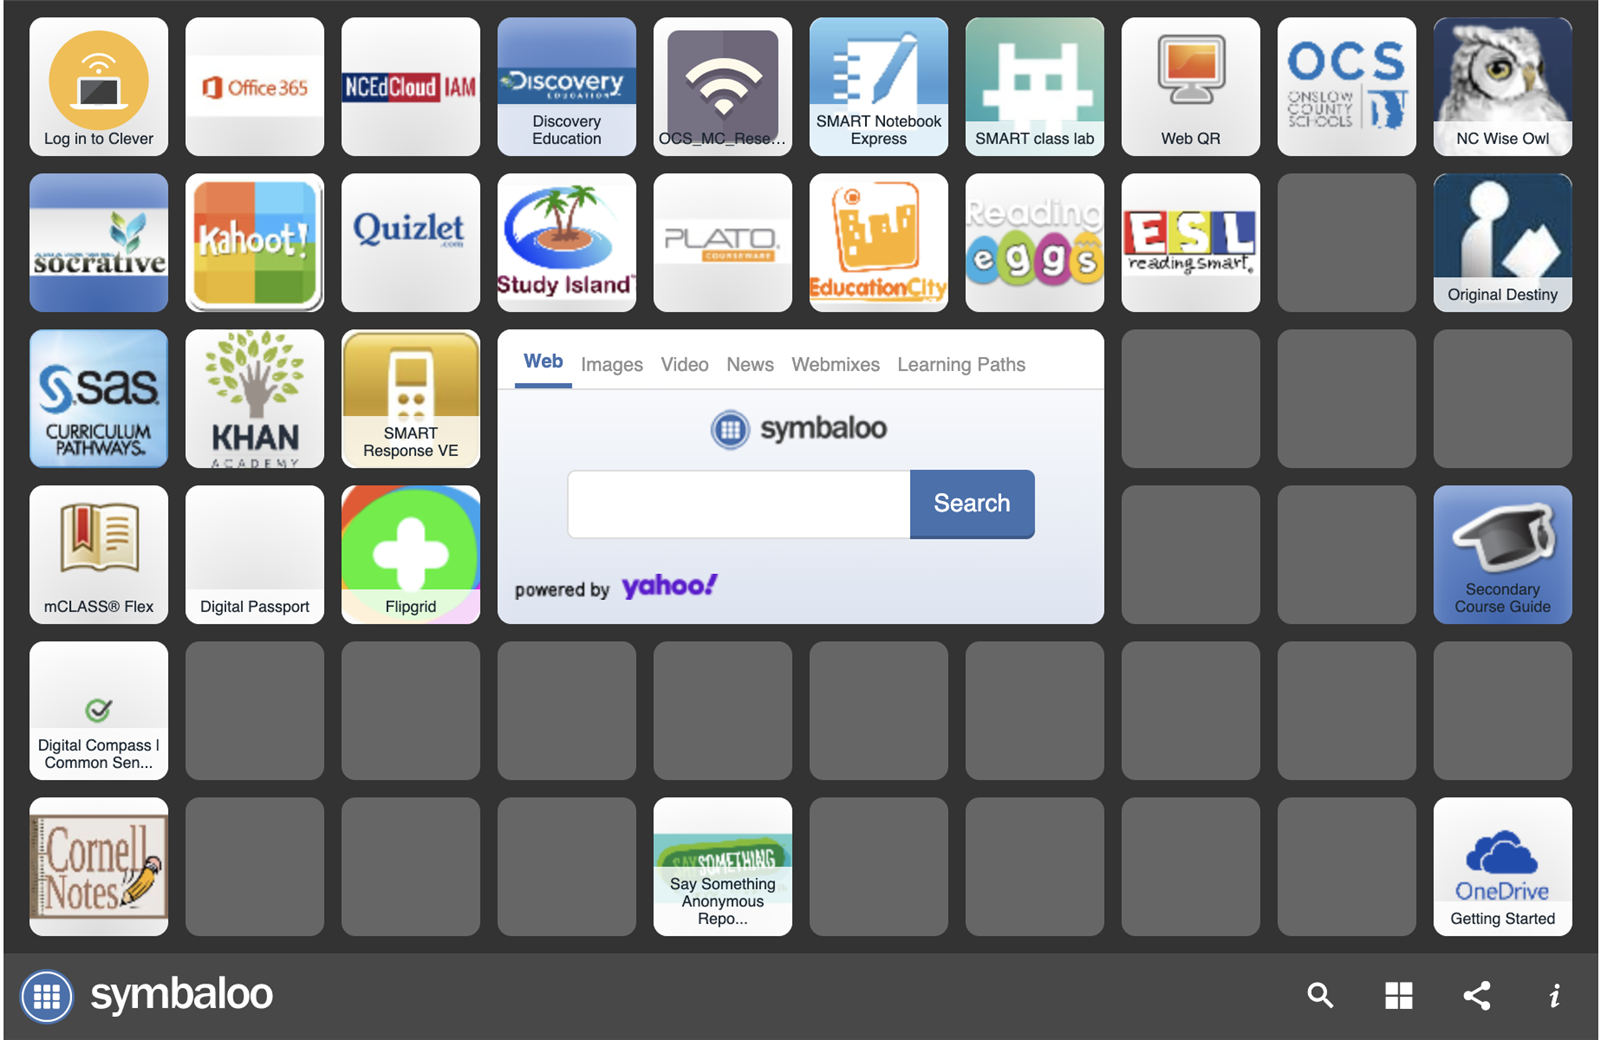 Click this link to access OCS student symbaloo page which will give you access to Clever, Powerschool, and other digital platforms utilized within the classroom.